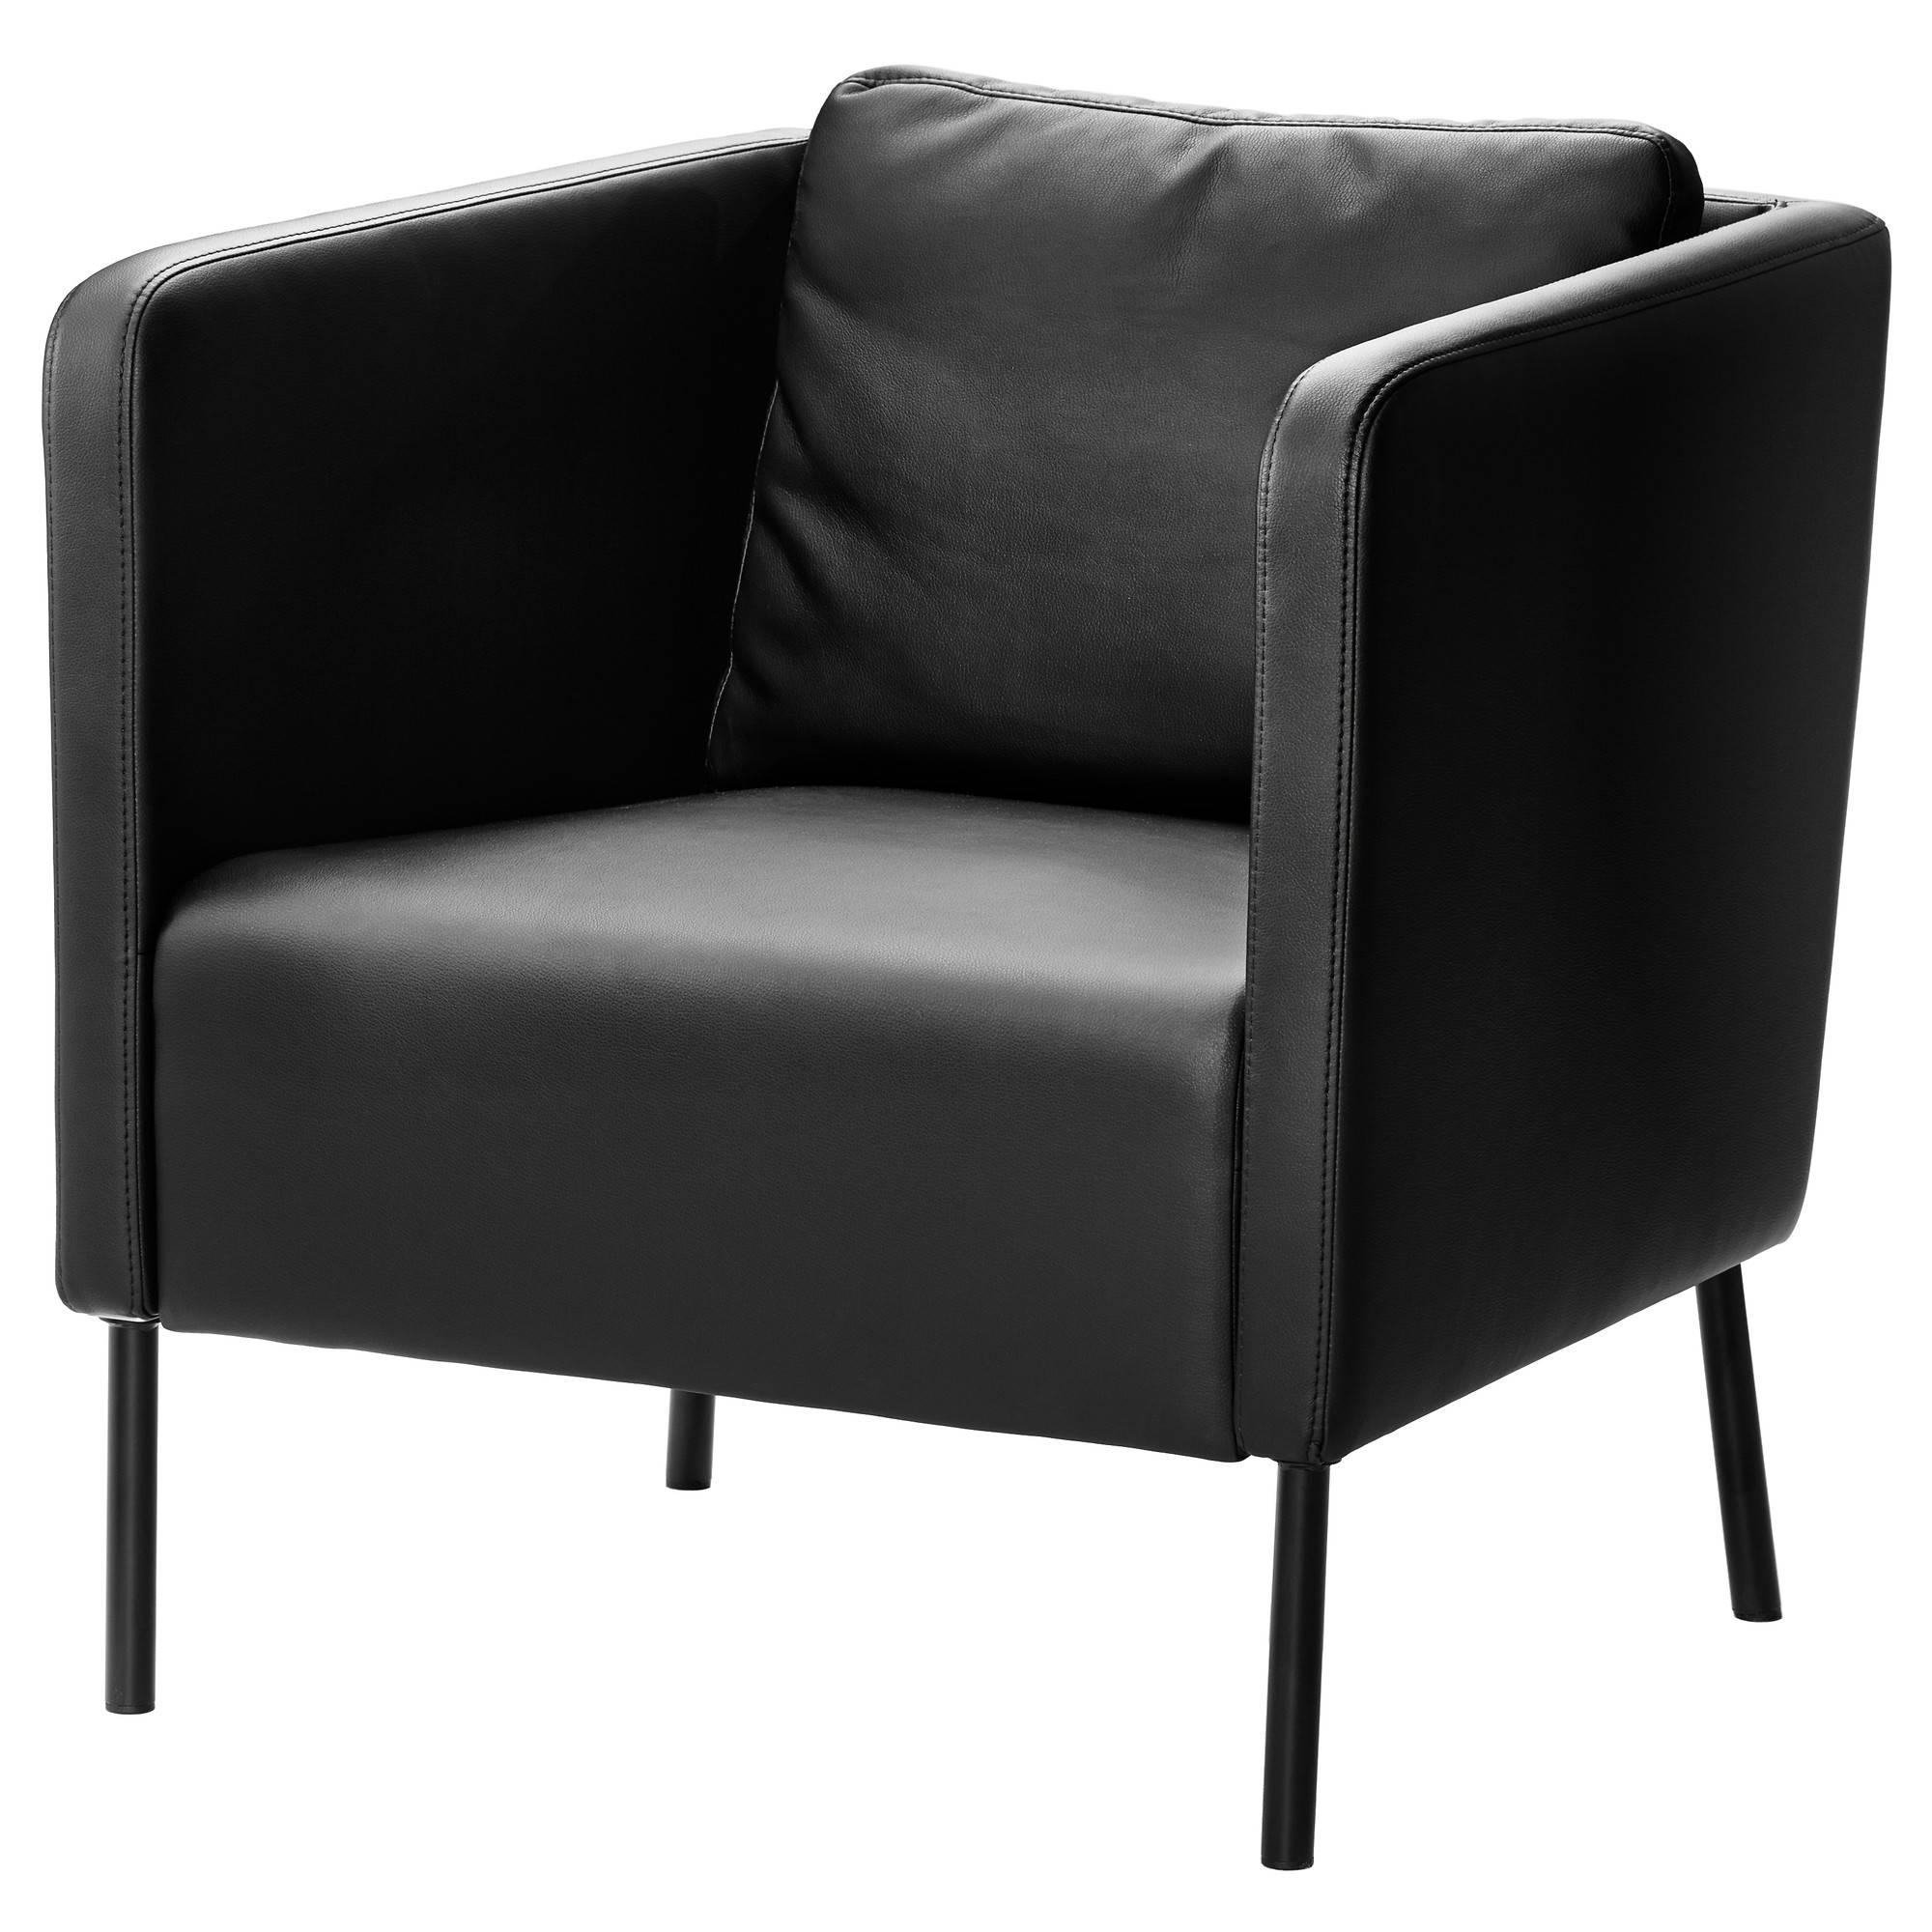 Armchairs & Recliner Chairs | Ikea With Regard To Small Sofas And Chairs (View 1 of 15)